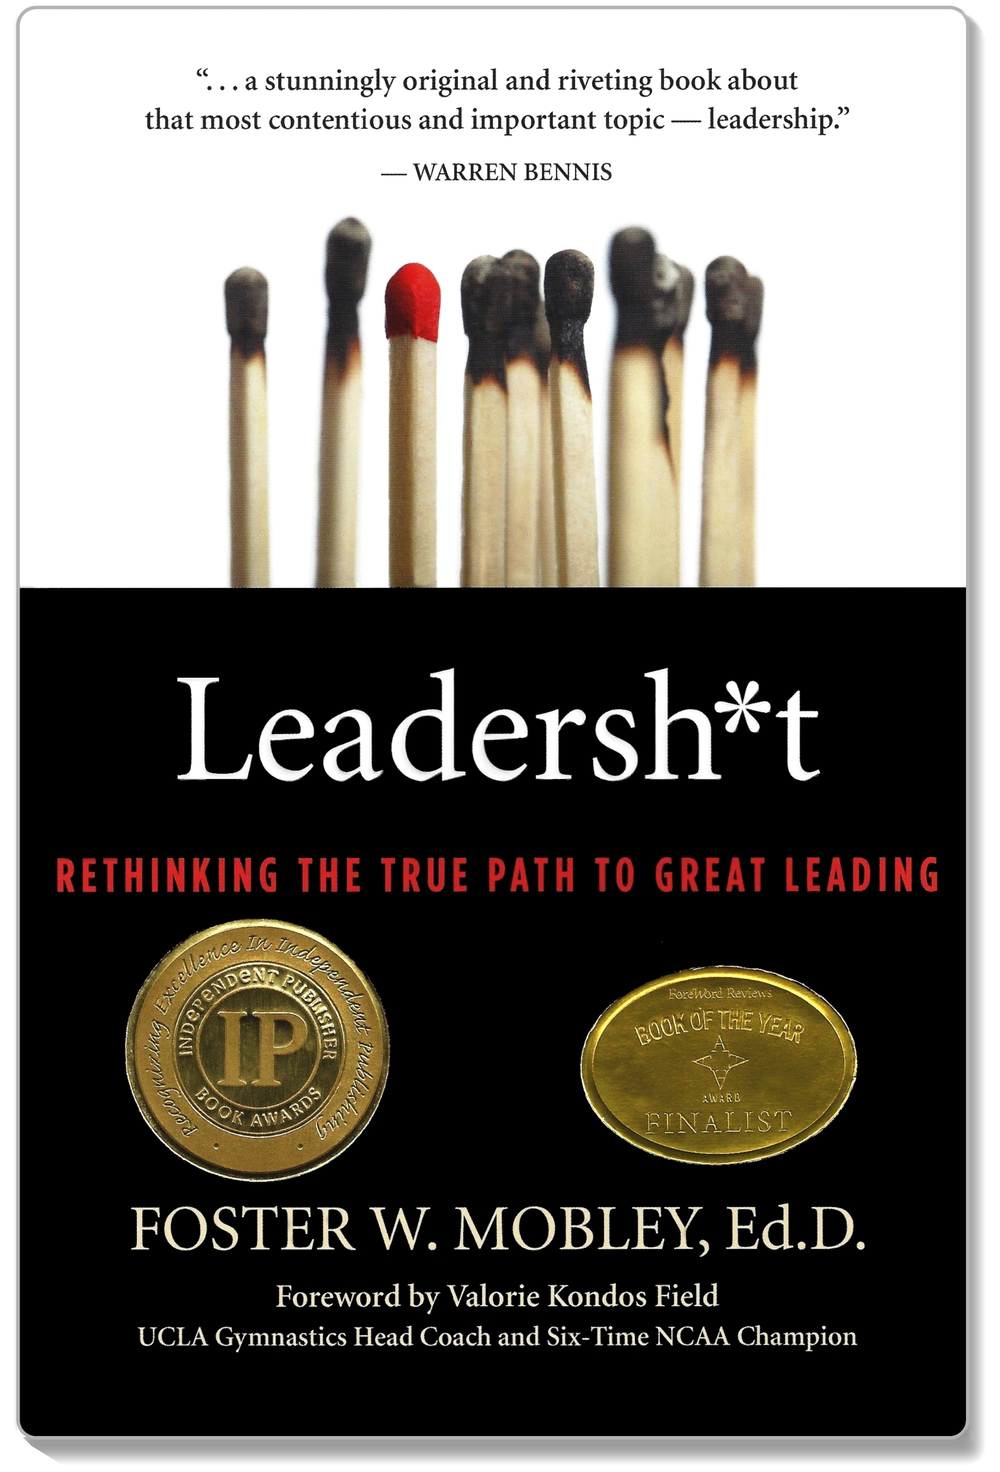 Leadersh*t by Dr. Foster Mobley.jpg